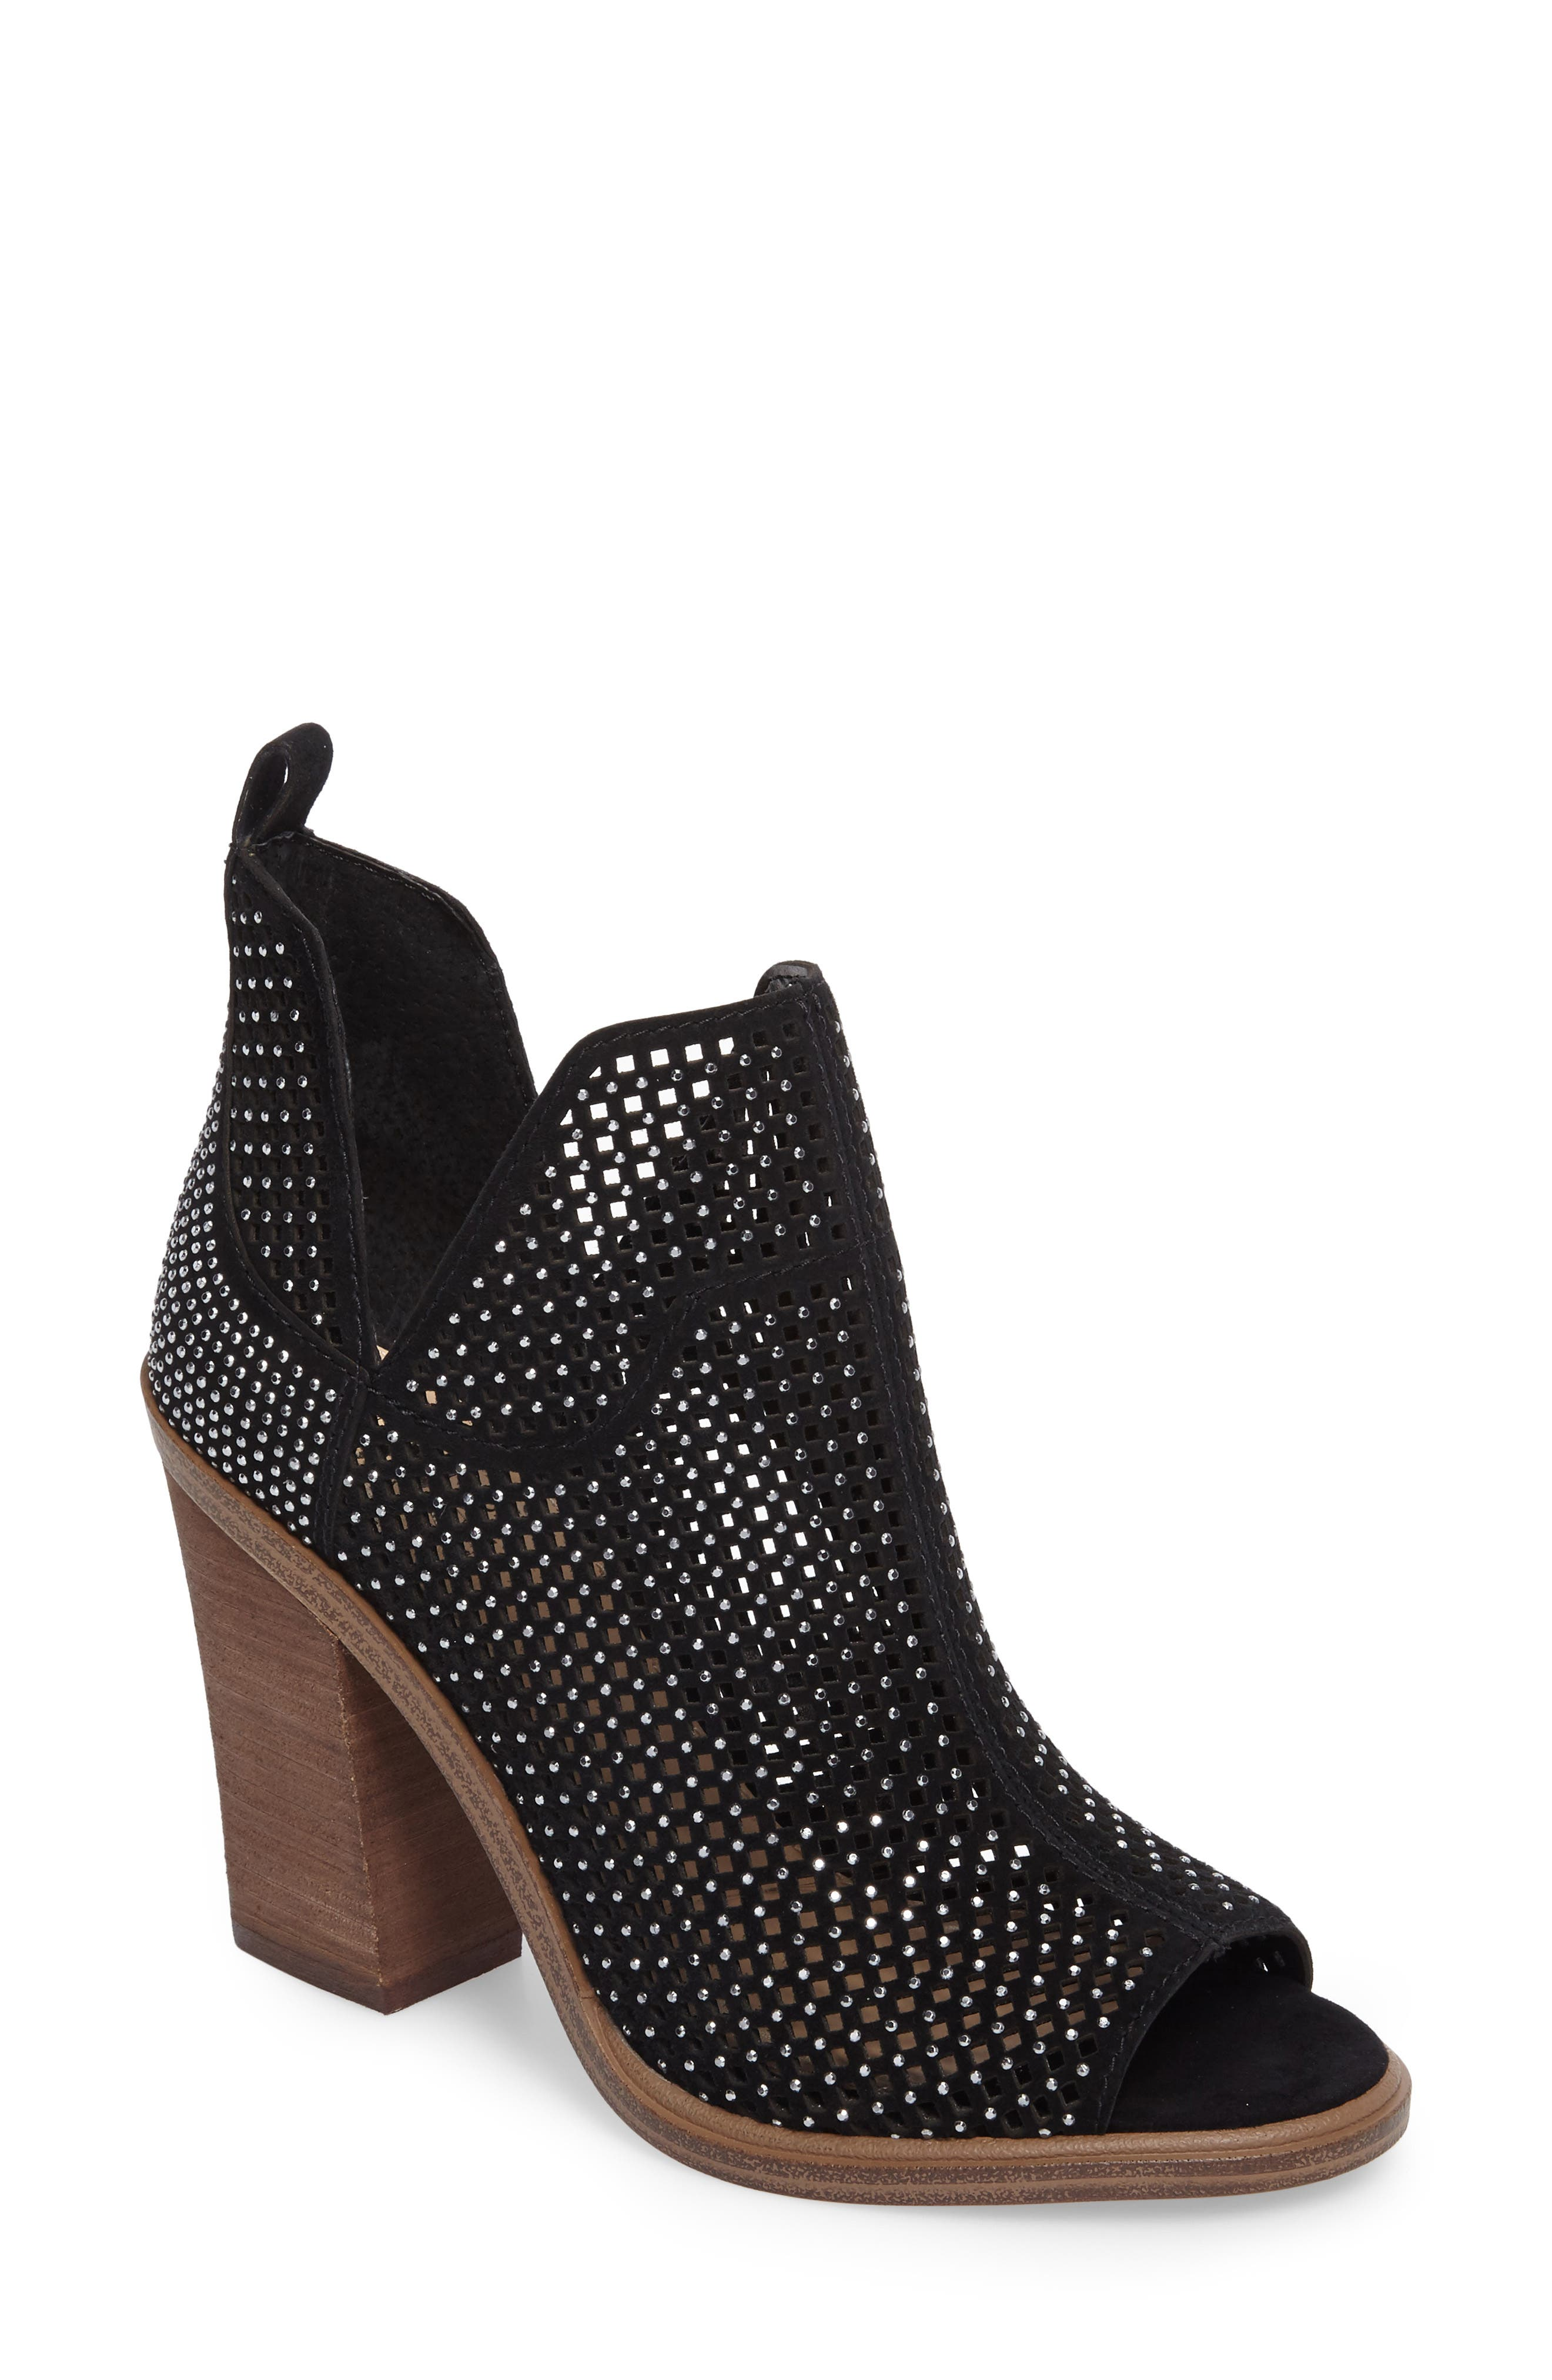 VINCE CAMUTO,                             Kiminni Open Toe Bootie,                             Main thumbnail 1, color,                             001